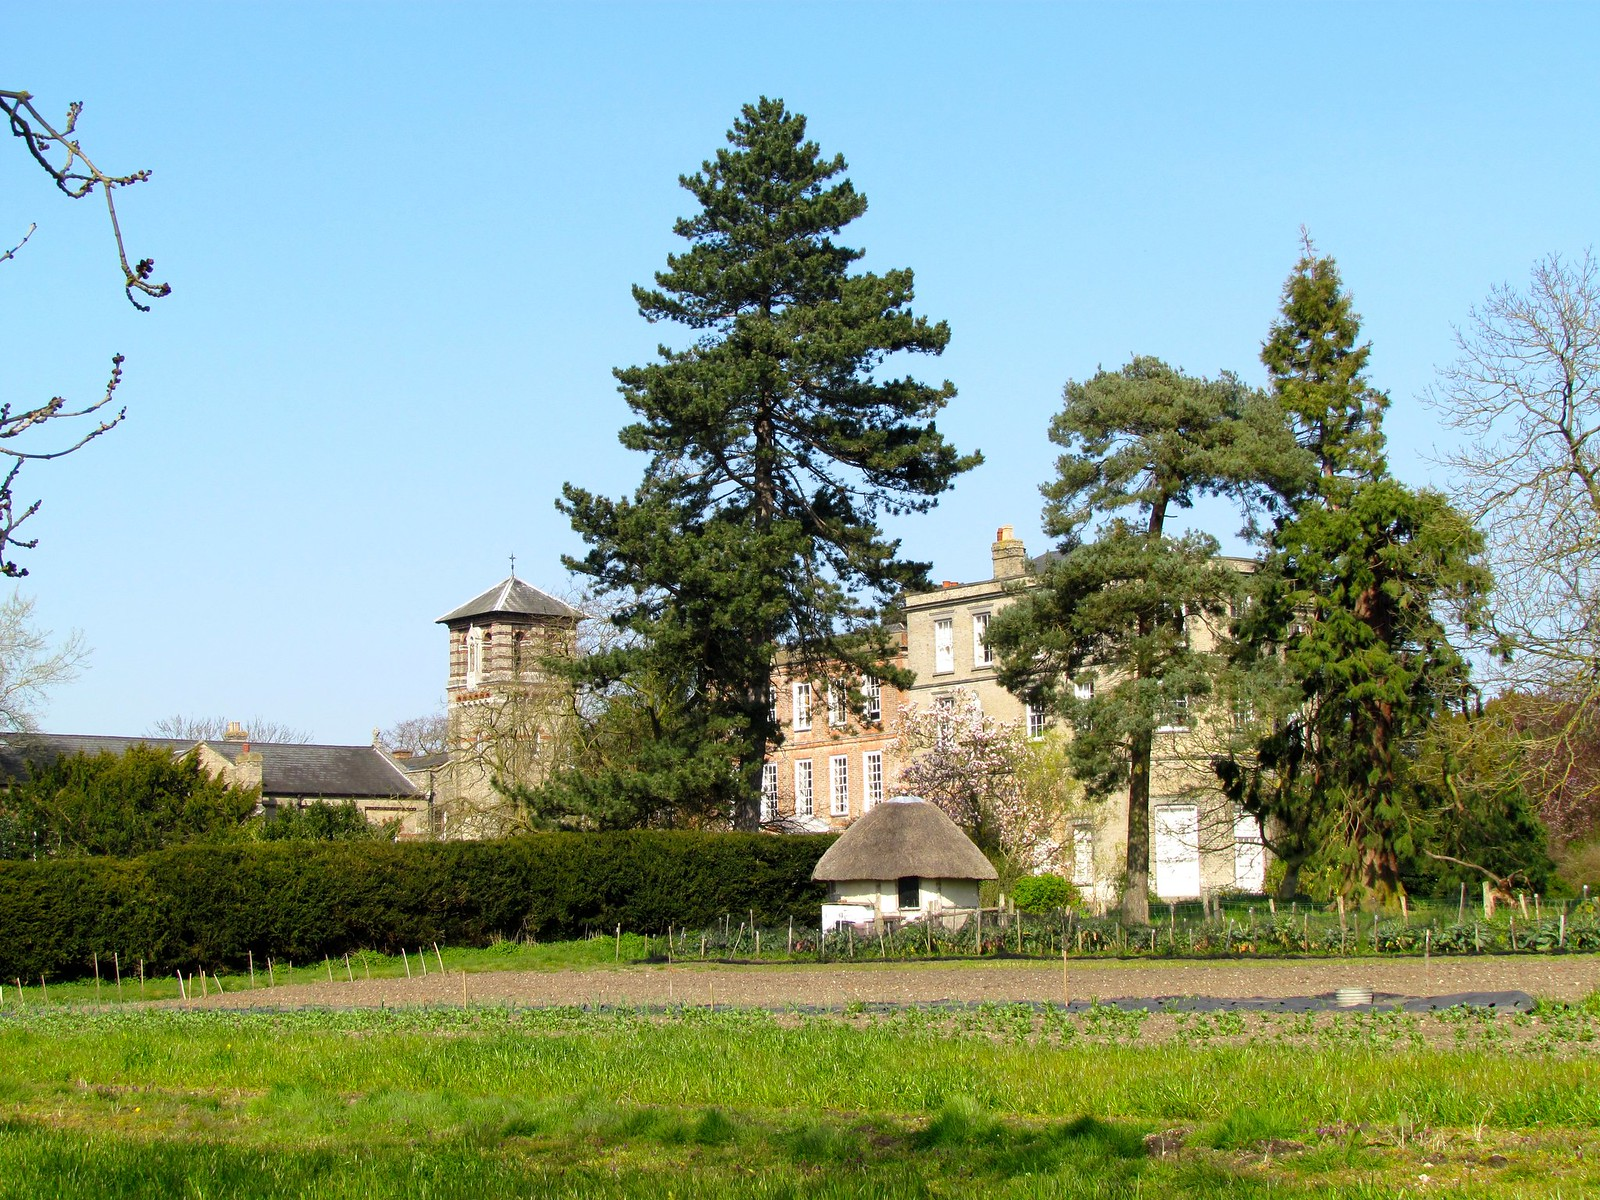 photo from walk Old Hall, East Bergholt